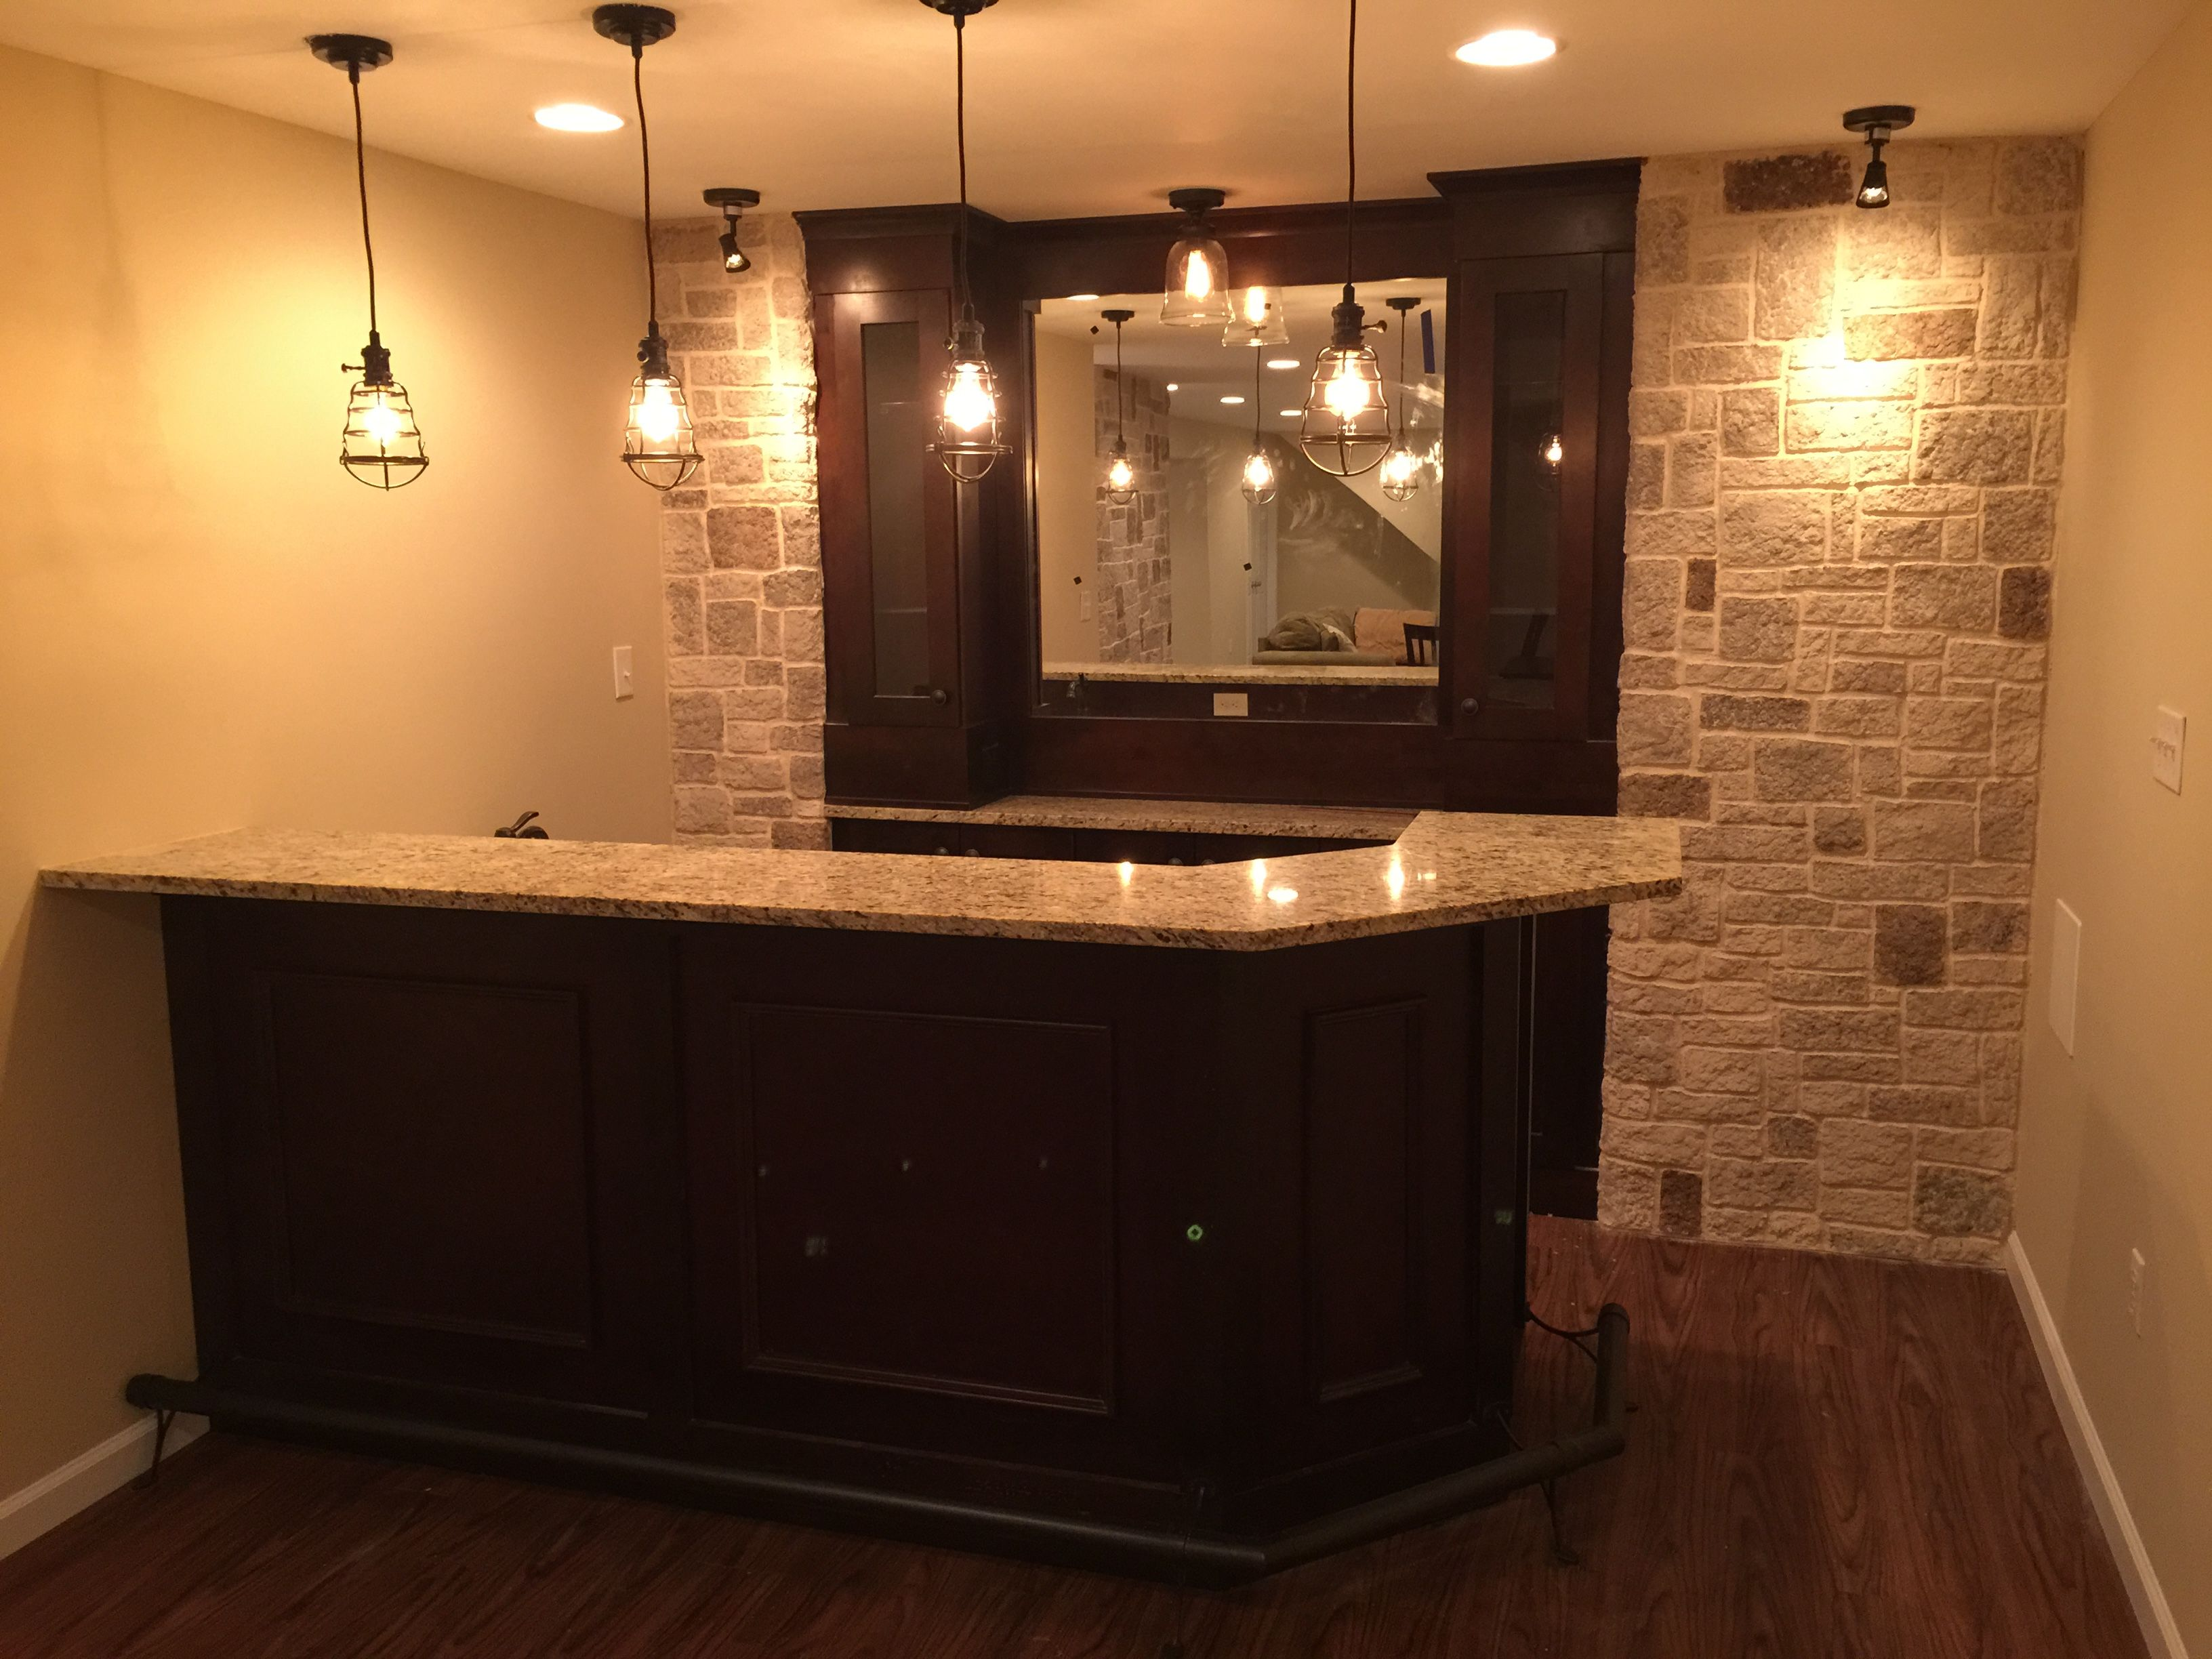 Delicieux Stone Coat, Remodeling, Basement Waterproofing, Foundation Crack Repair,  Mold Remediation, Egress · Basement WaterproofingSt LouisBasementsRemodeling  ...